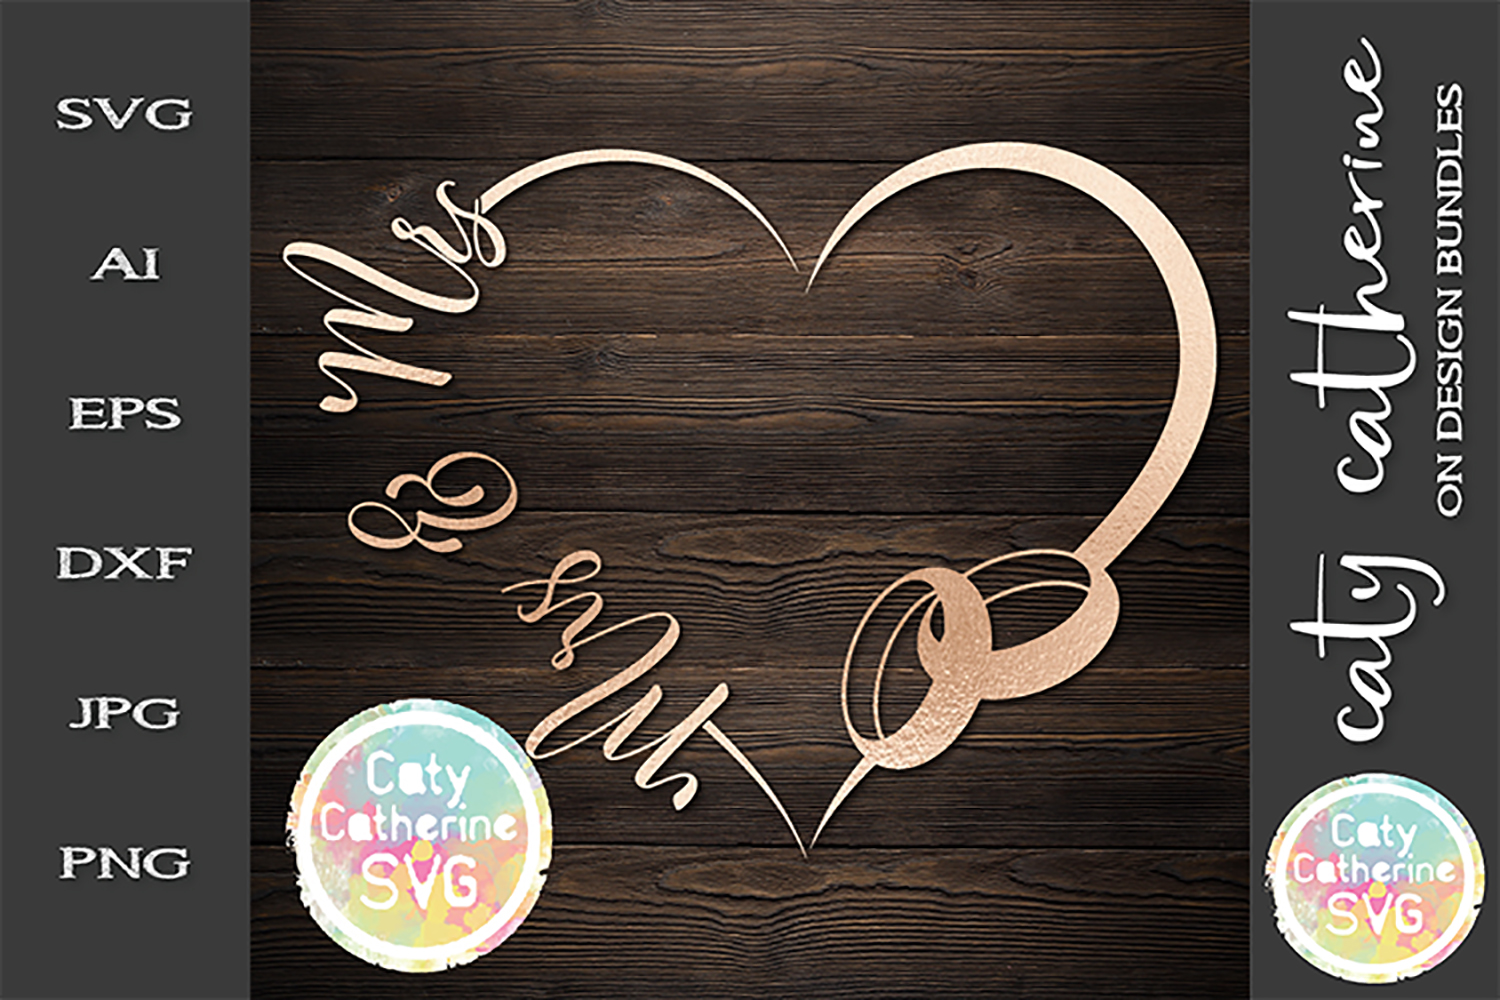 Wedding Love Heart Frame With Rings Bundle SVG Cut File example image 4